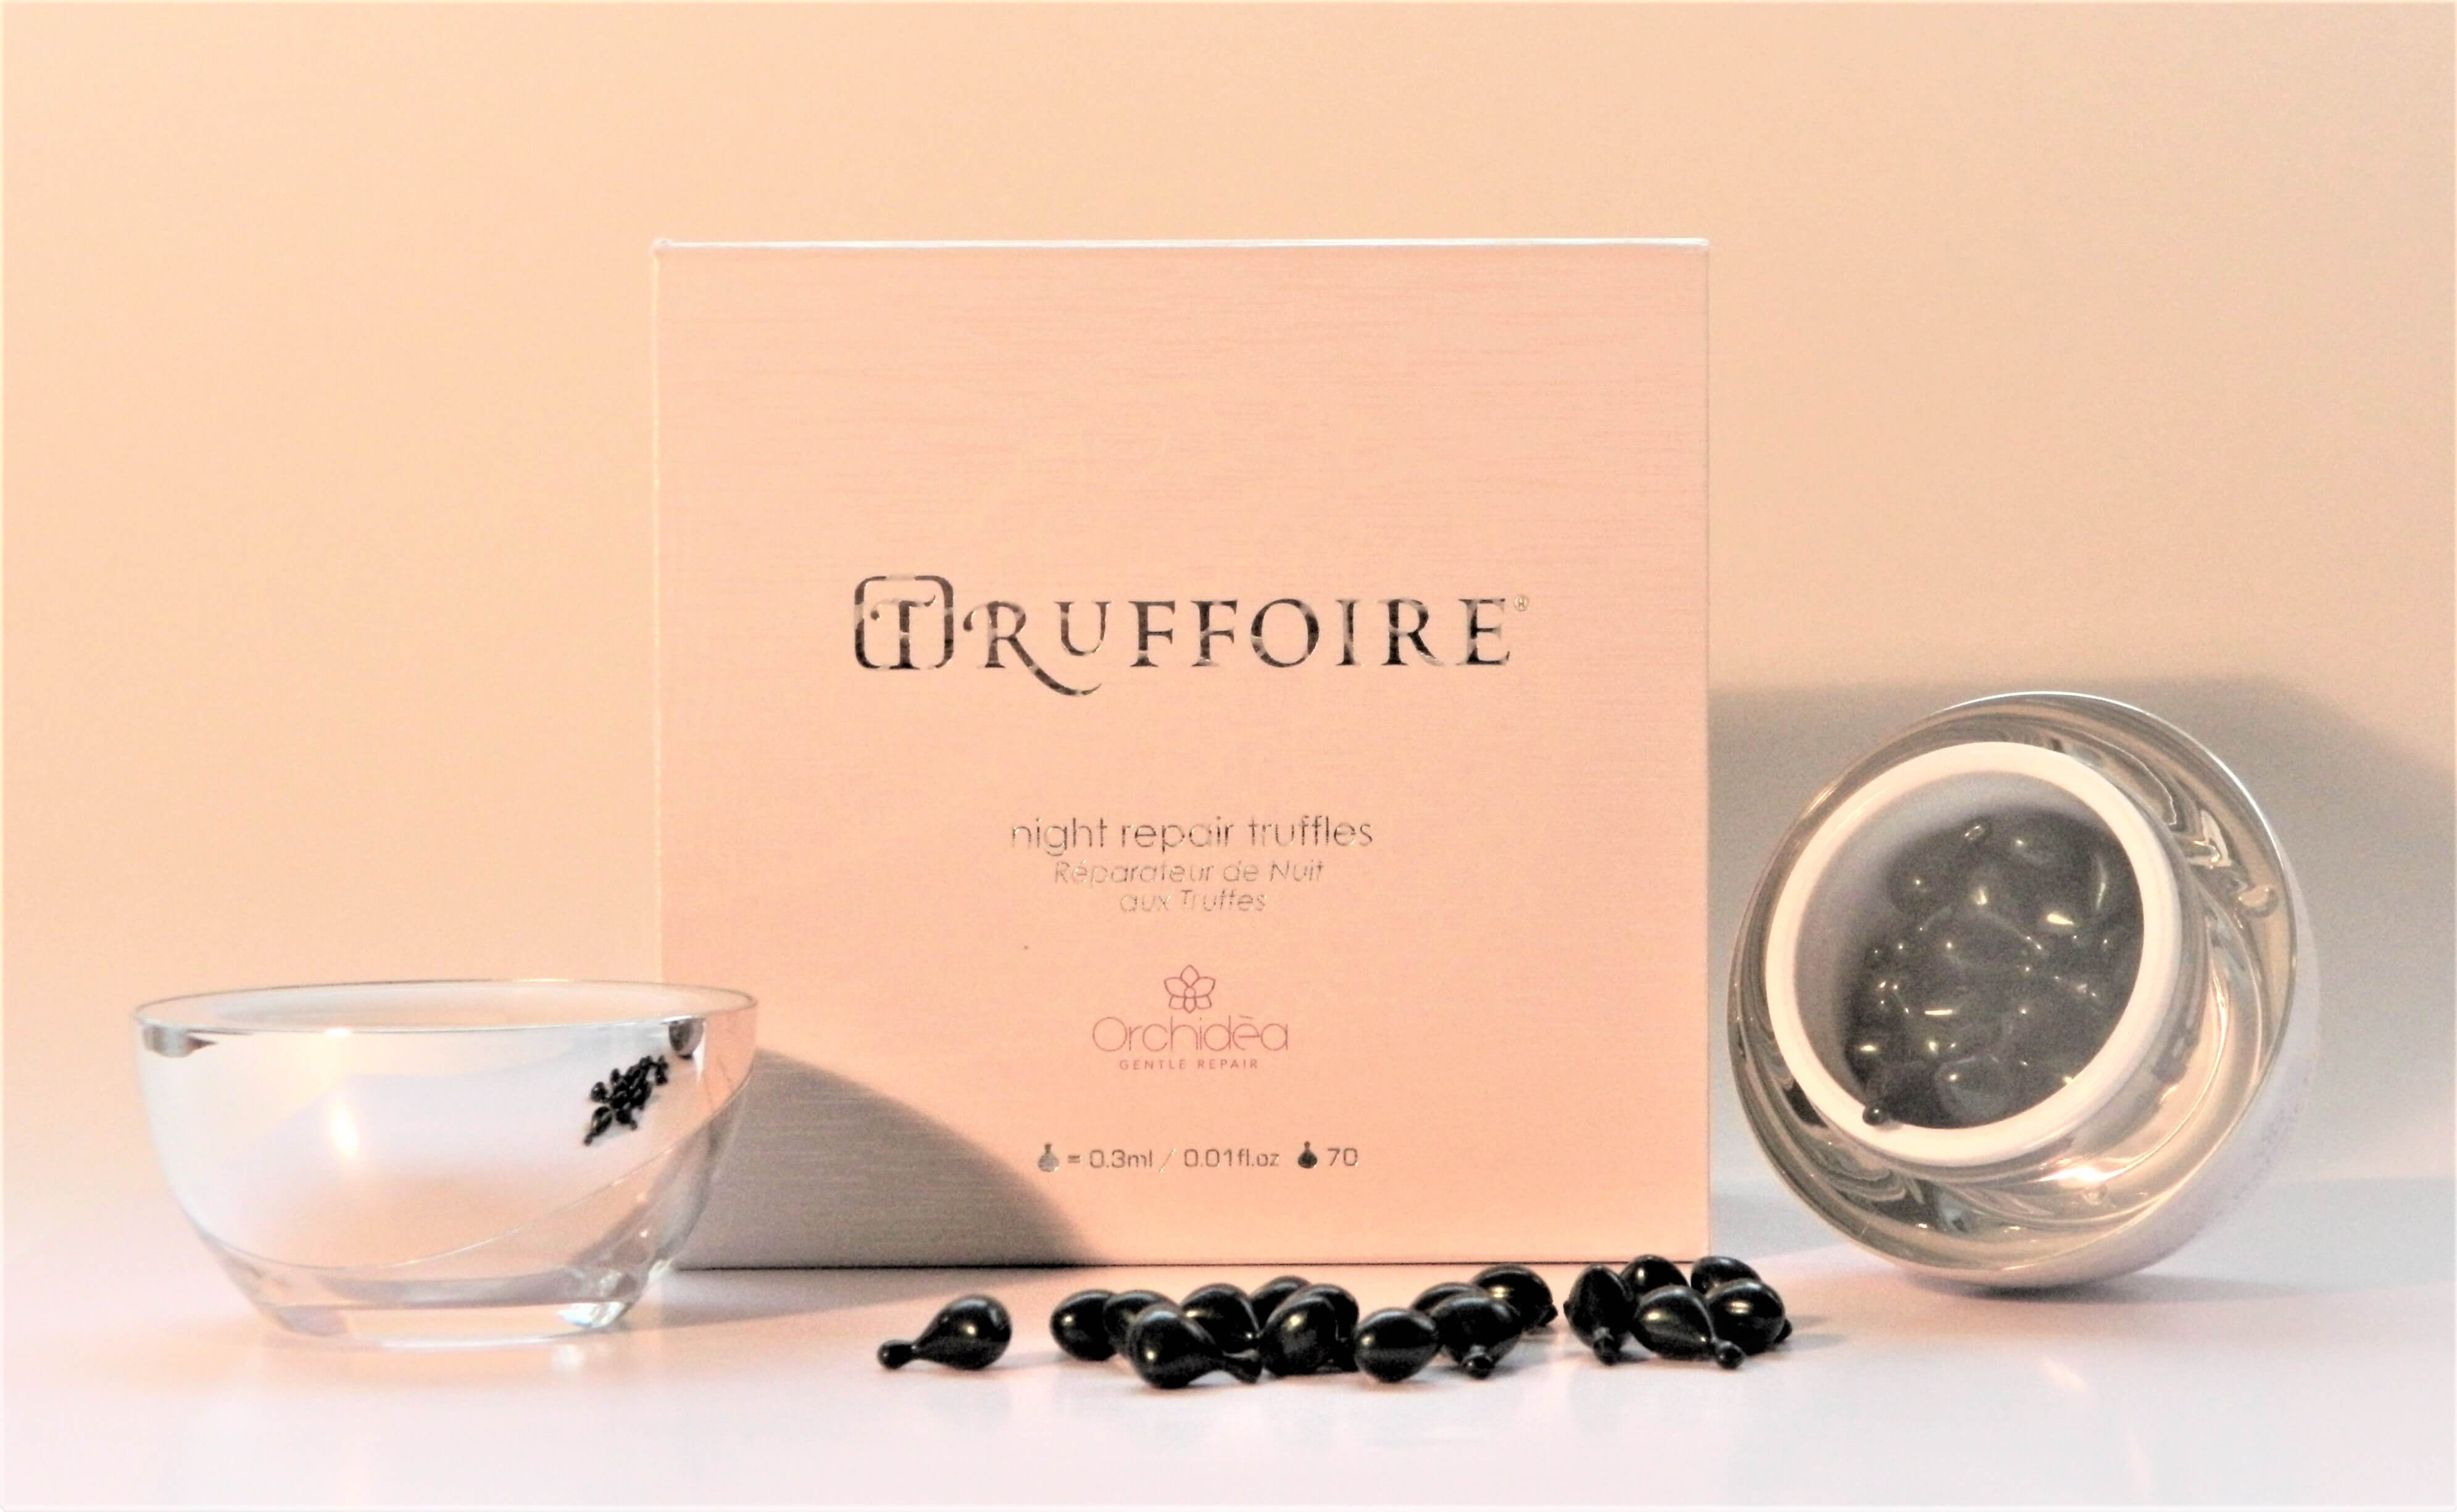 Truffoire skincare capsules in front of box